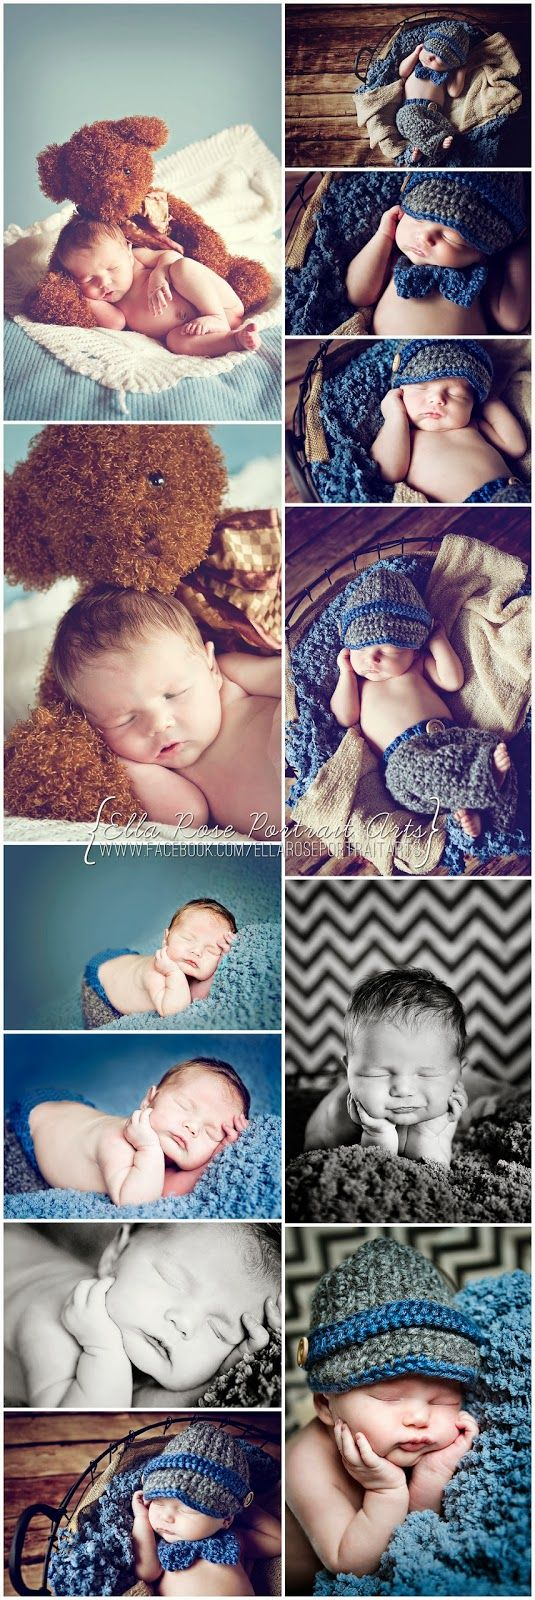 love the images with the stuffed bear... so cute, by Crafting & Coffee Makes this Momma Happy: Little Boy Blue - newborn photography